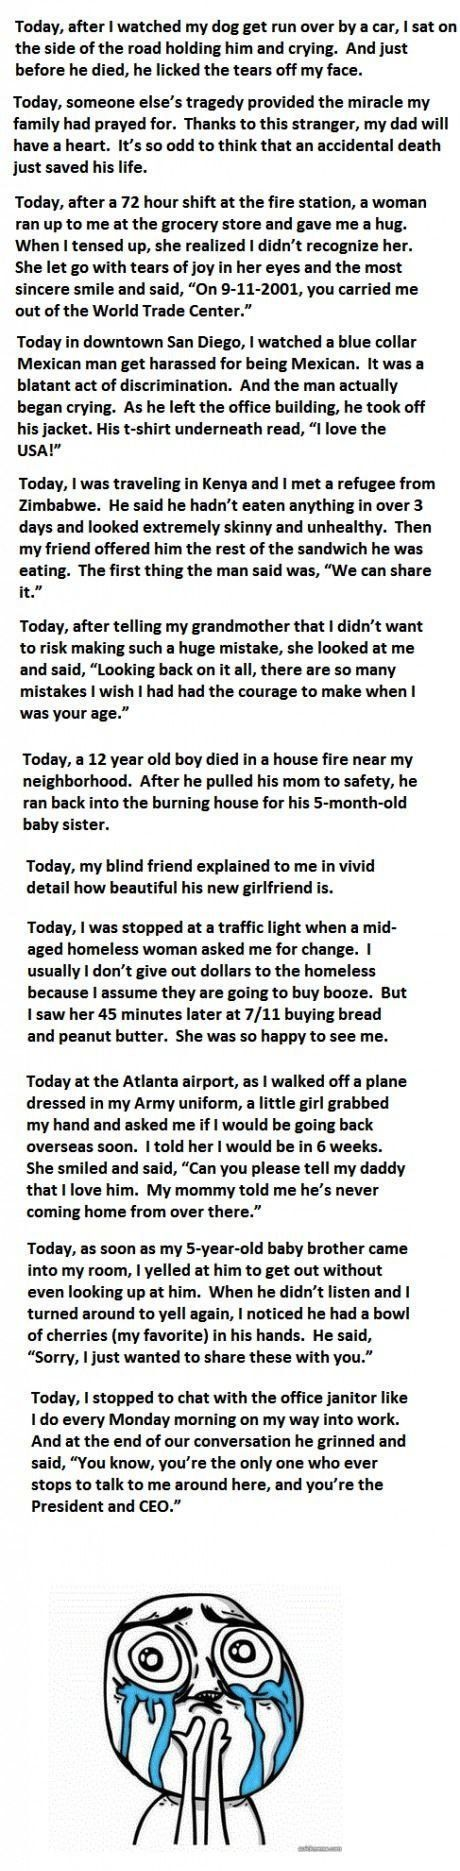 :'): Little Girls, Sad Stories, Faith In Humanity Restored, My Heart, So Sad